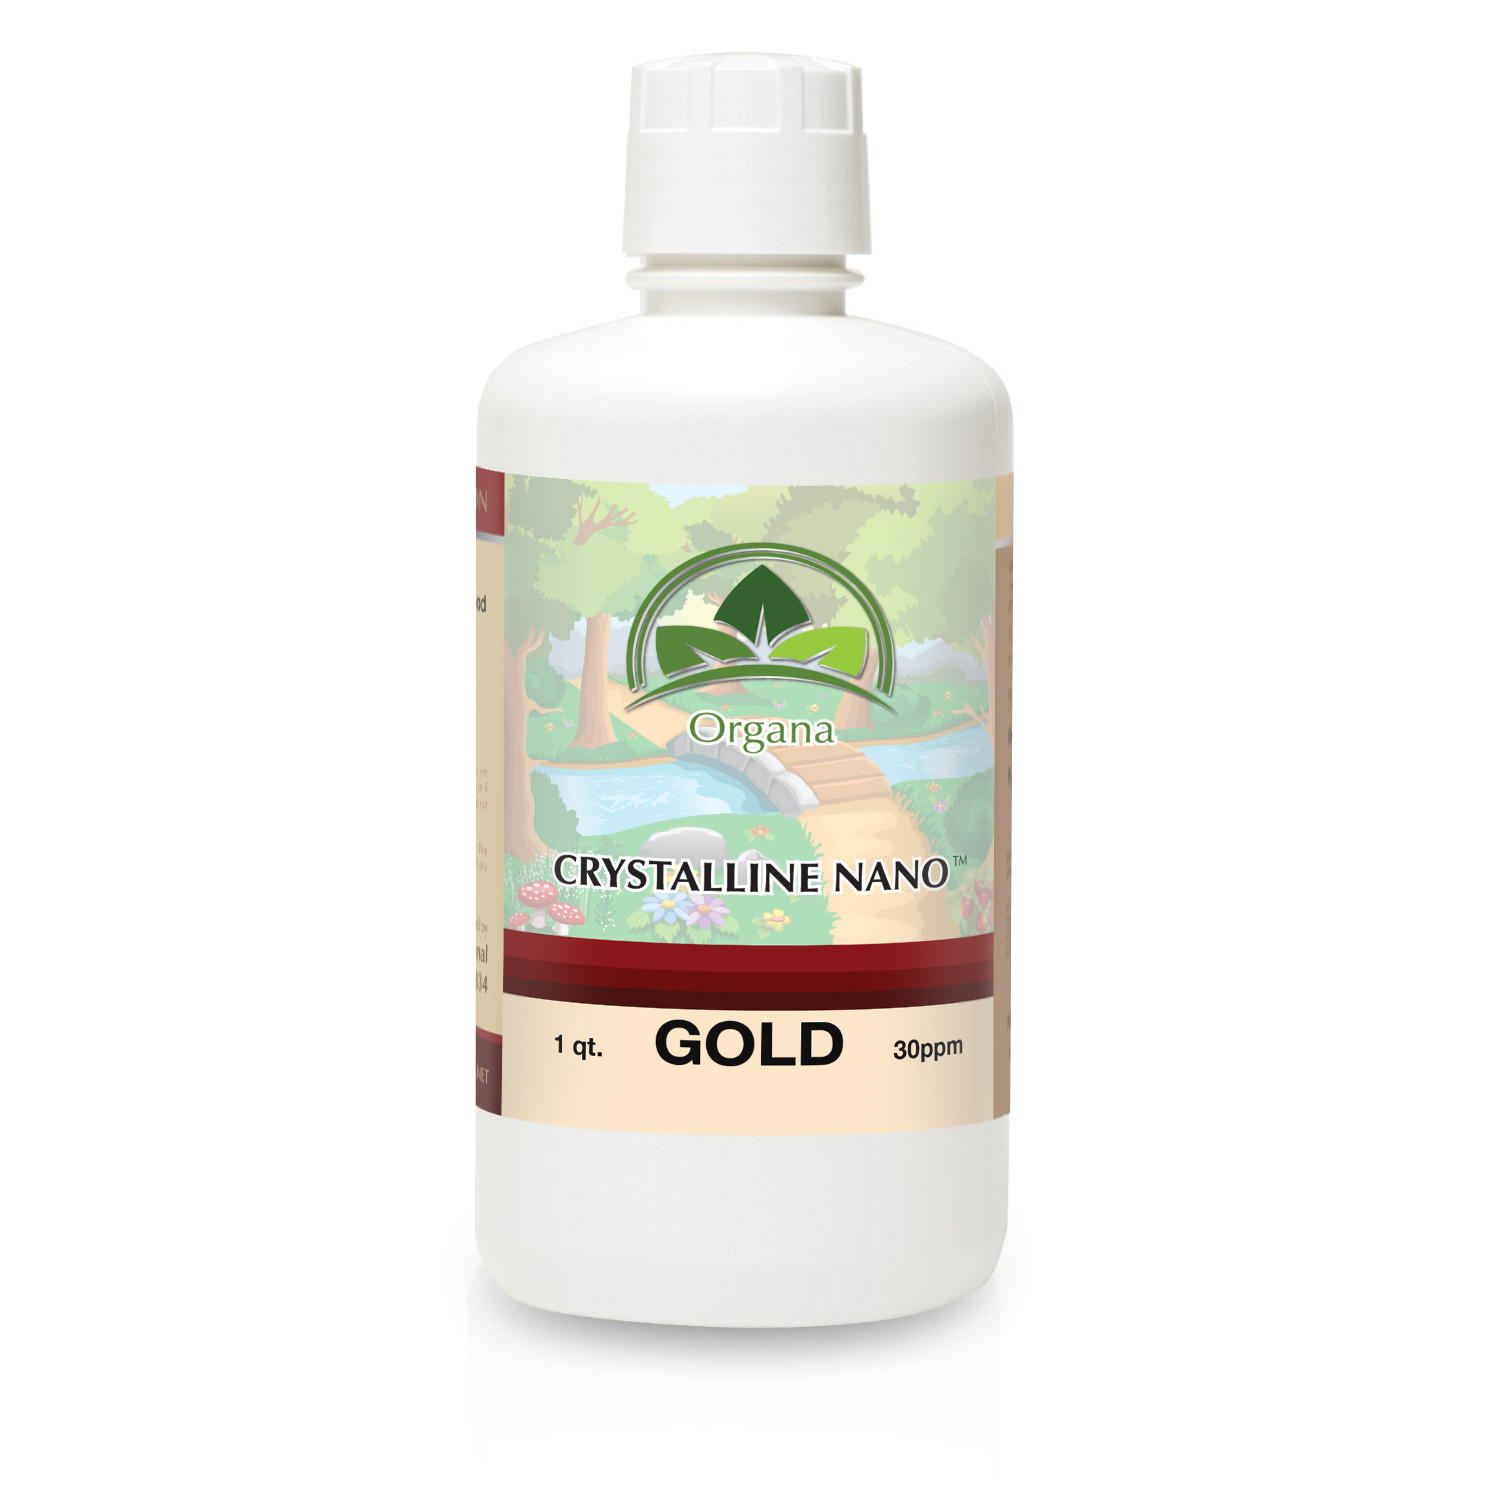 Organa Crystalline Nano Colloidal Gold Mineral 30 PPM